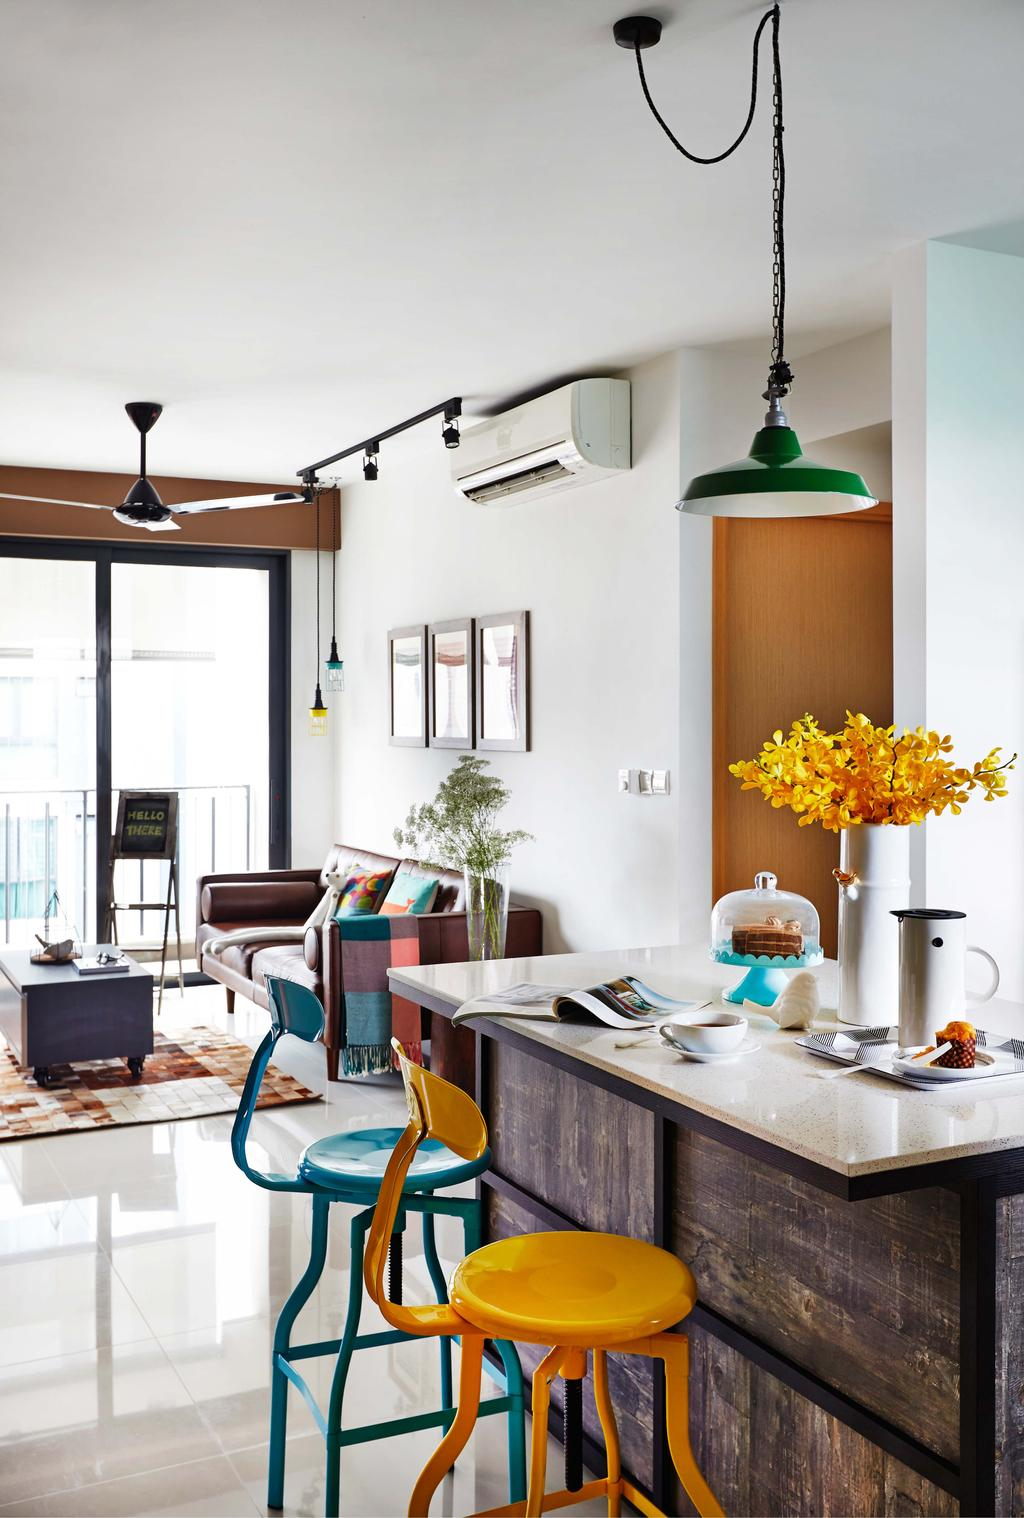 Scandinavian, Condo, Esparina Residences, Interior Designer, Dan's Workshop, Dining Area, Sofa, Track Lights, Ceiling Fan, Aircon, Cofee Table, Carpett, Tiles, Island Table, Island Top, Flora, Jar, Plant, Potted Plant, Pottery, Vase, Couch, Furniture, Dining Room, Indoors, Interior Design, Room, Chair, Lamp, Table Lamp, Shelf